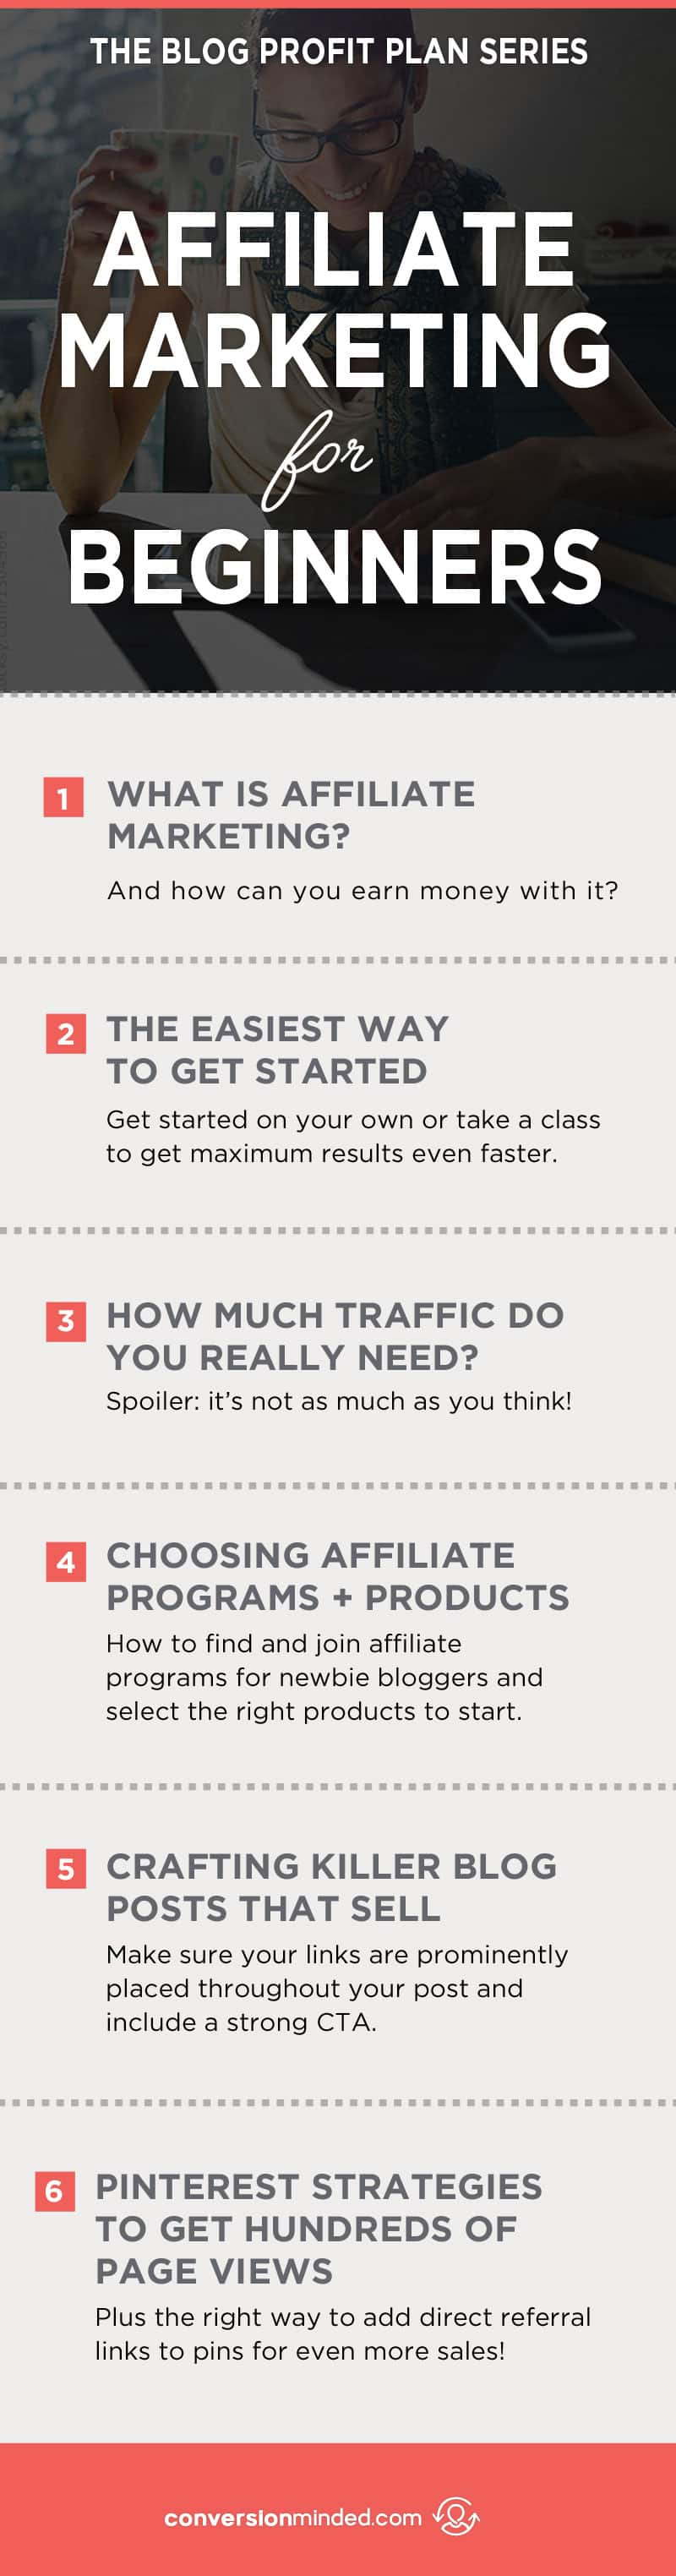 How to Make Money from Affiliate Marketing | Have you been wanting to try affiliate marketing for your blog, but wonder if it's just too hard or maybe even a waste of time? This post is for you! I'm sharing everything I've learned from the Making Sense of Affiliate Marketing Course to help entrepreneurs and bloggers get started with ease! Click through to see all the course highlights!